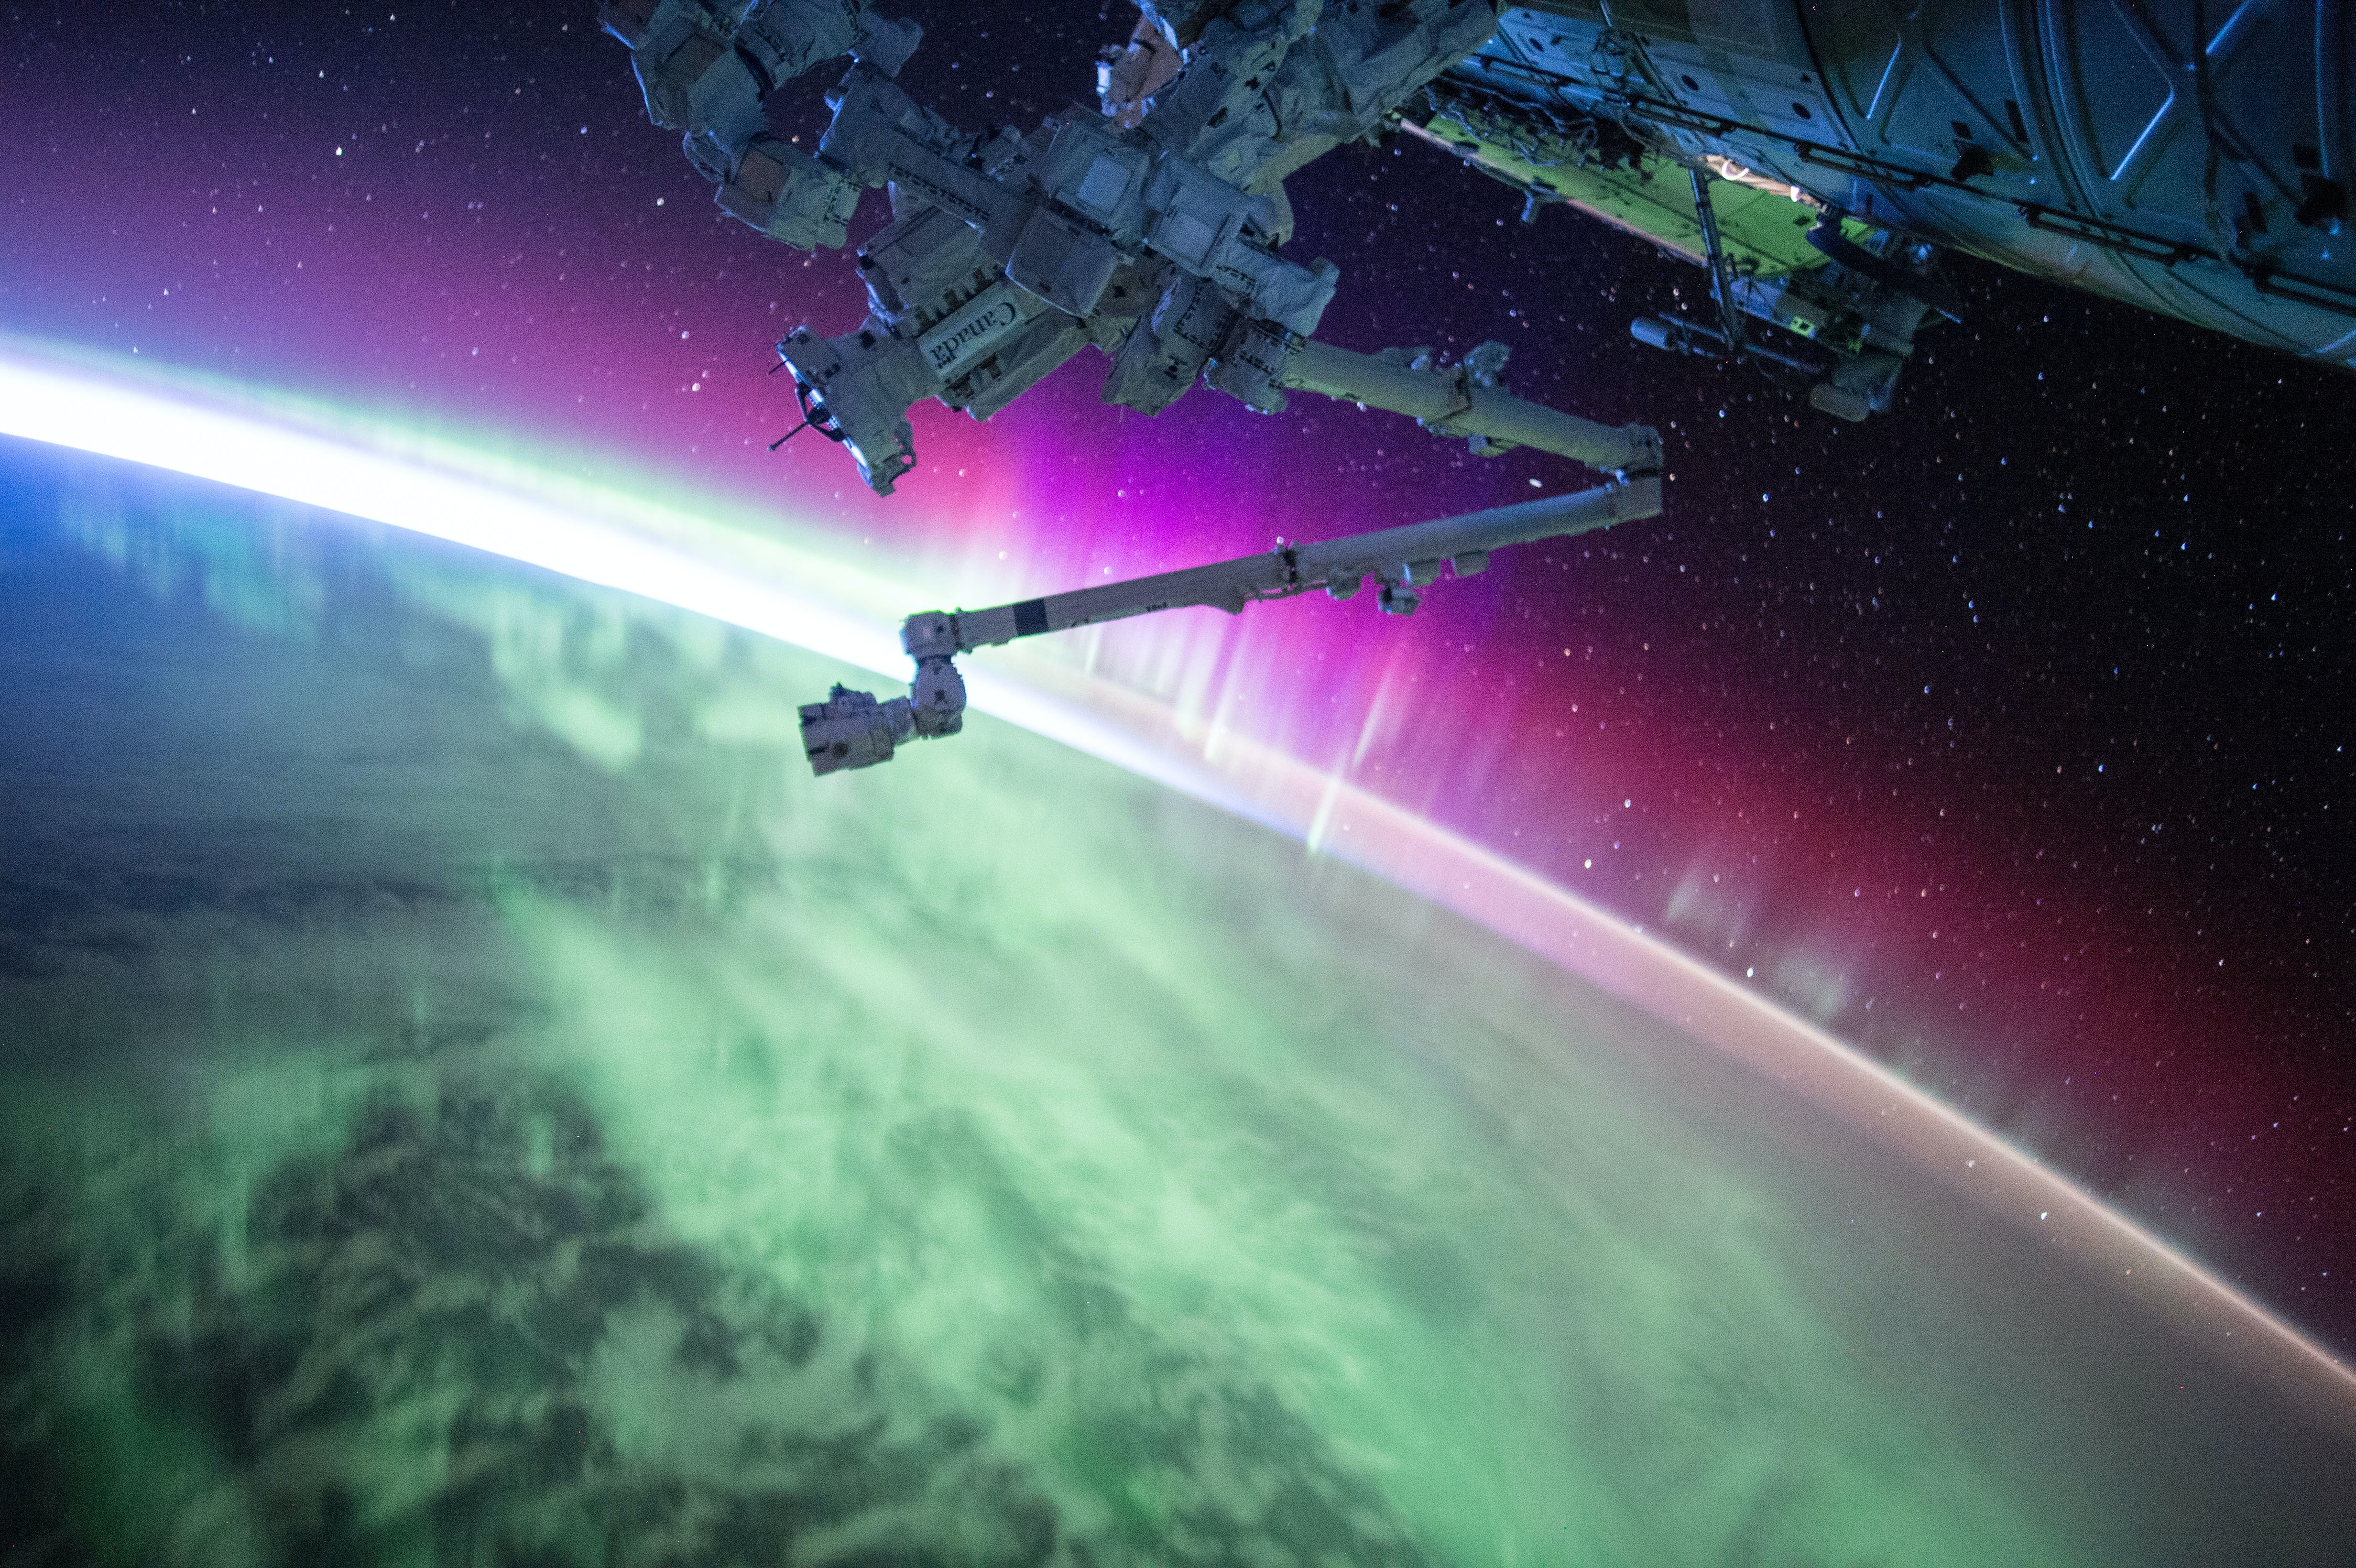 photography of purple and green aurora beam below grey space satellite